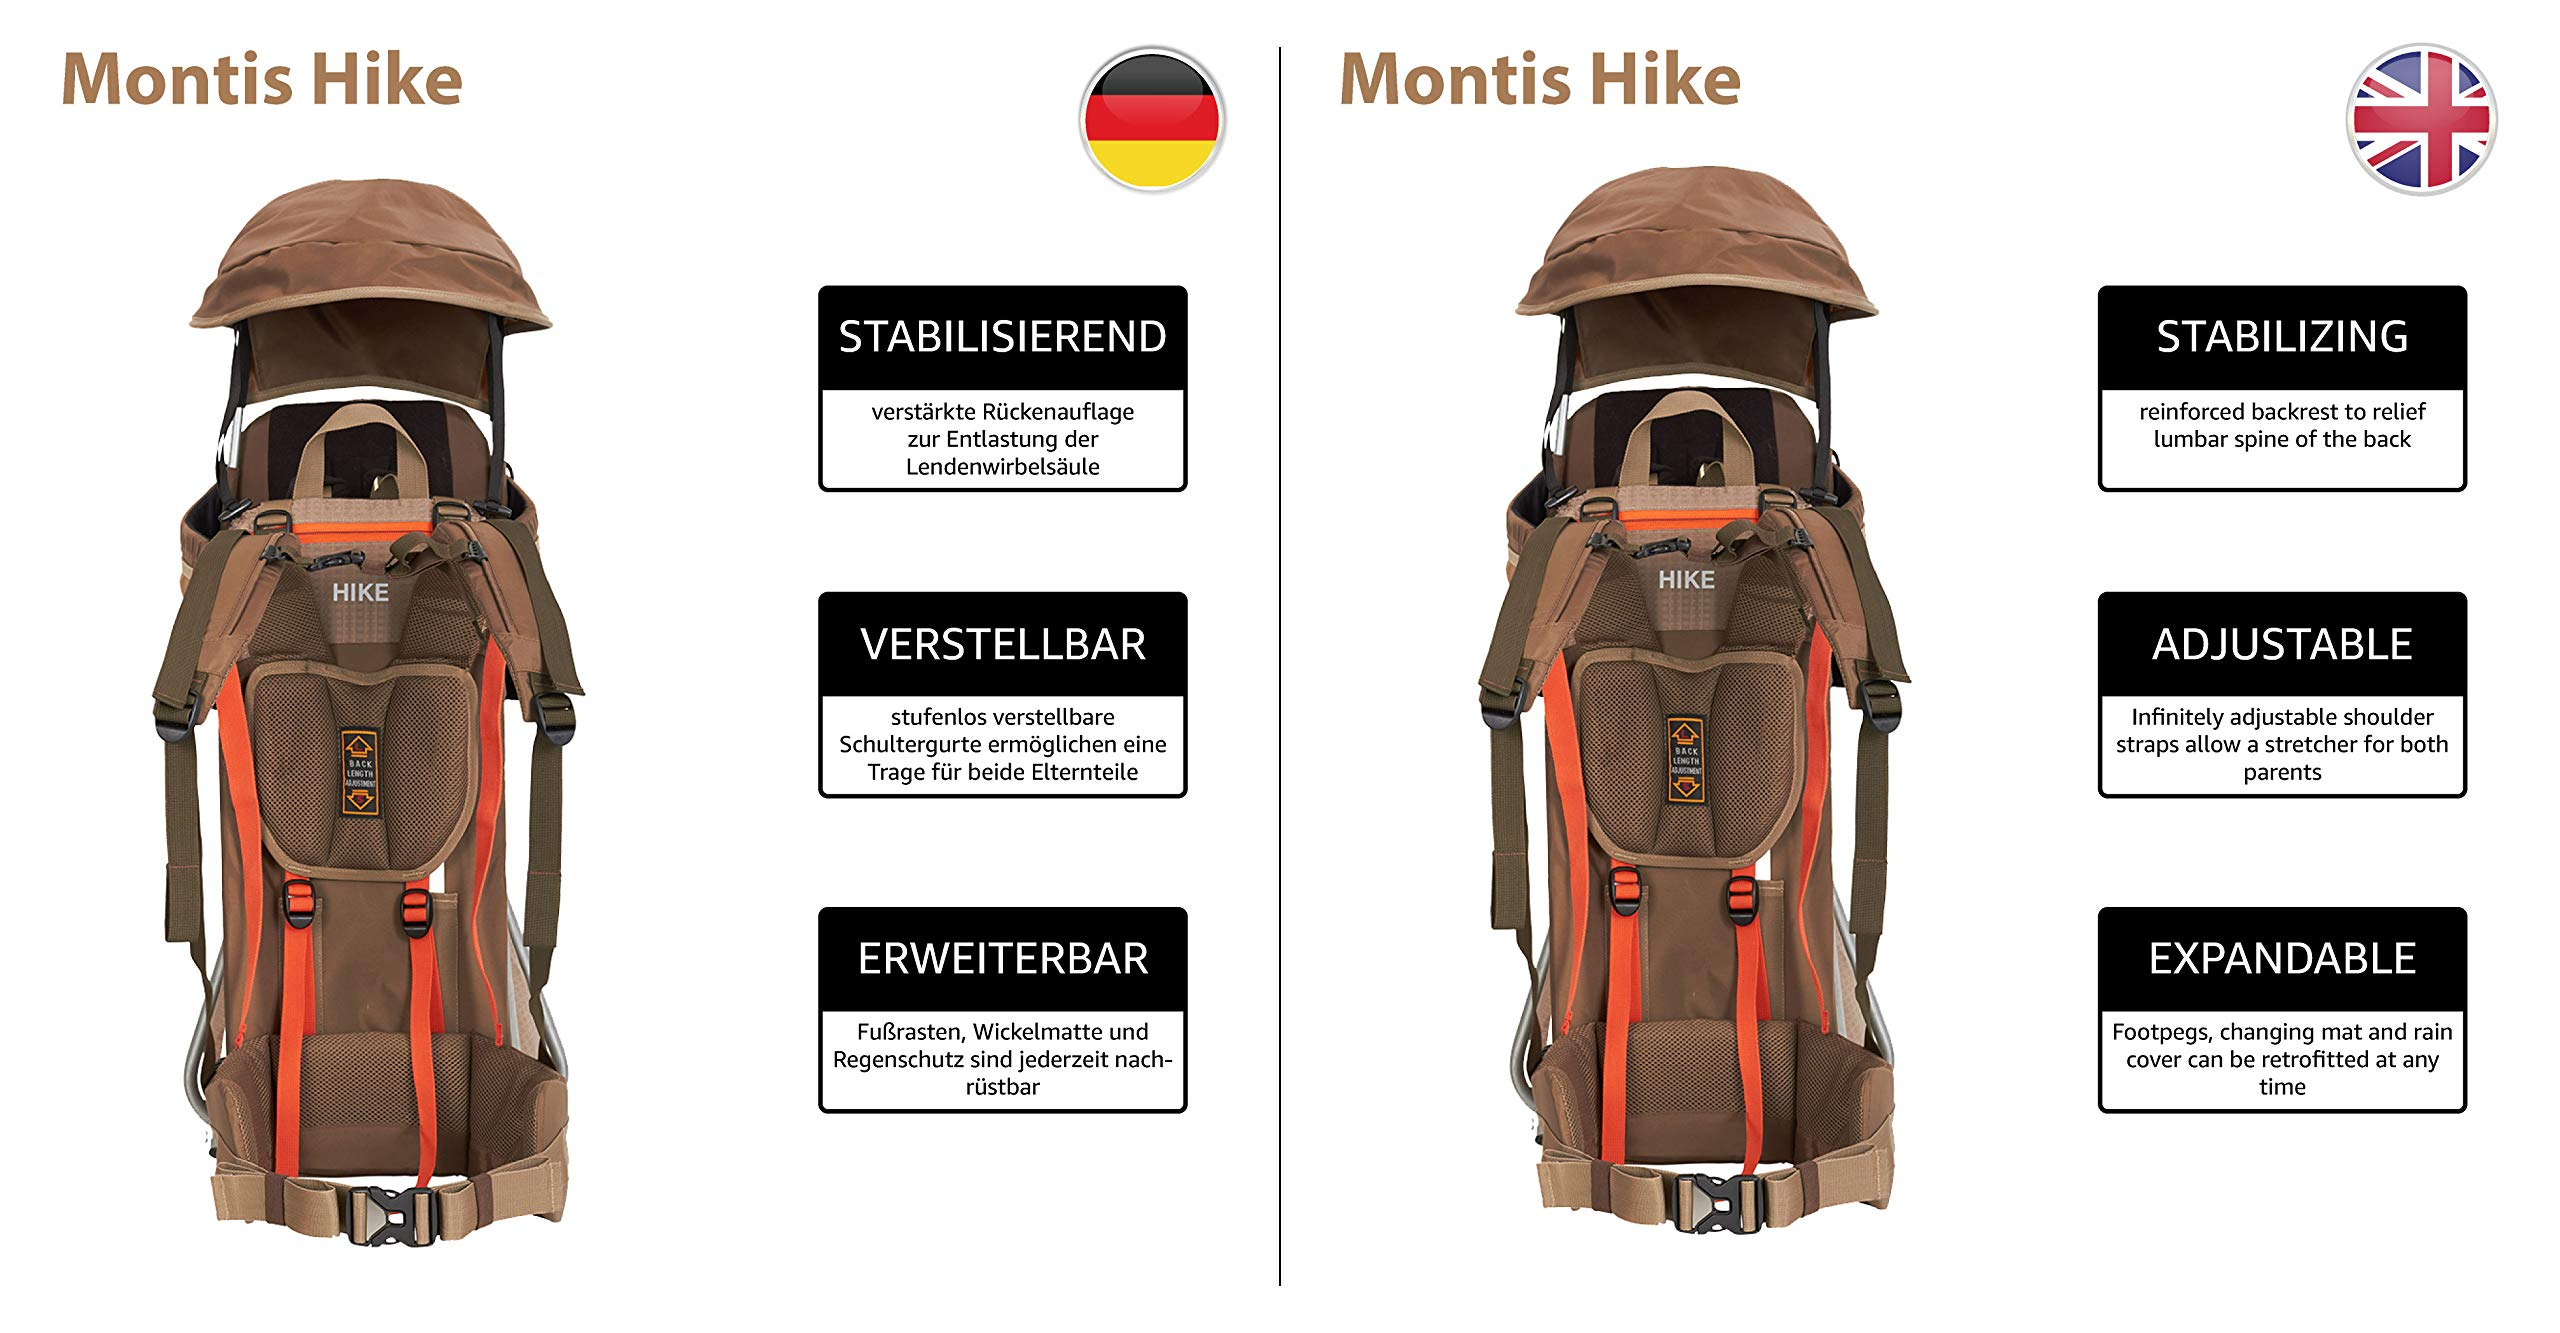 MONTIS HIKE, Premium Back Baby/Child Carrier, Up to 25kg, (mocha) M MONTIS OUTDOOR 89cm high, 37cm wide | up to 25kg | various colours | 28L seat bag Laminated and dirt-repellant outer material | approx. 2.2kg (without extras) Fully-adjustable, padded 5-point child's safety harness | plush lining, raised wind guard, can be filled from both sides | forehead cushion 6